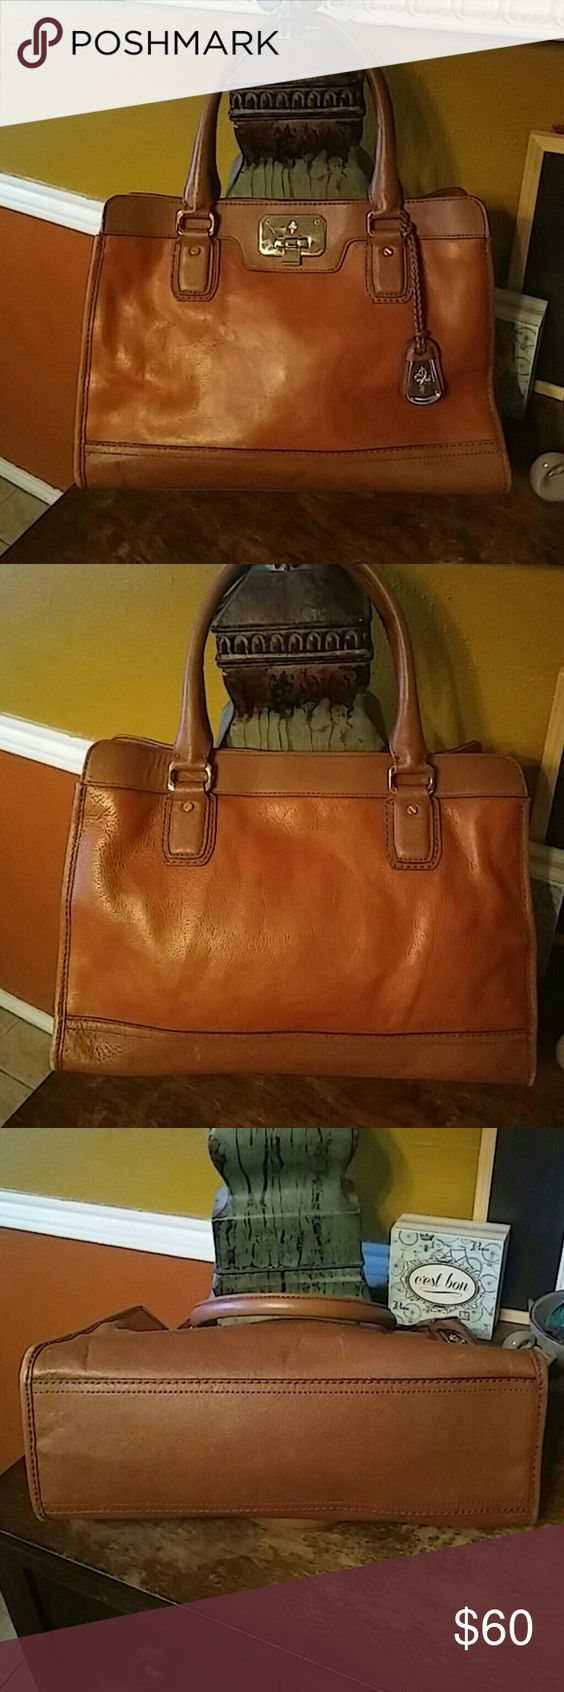 """Cole Haan Satchel 2 tone leather bag. Brown on top and bottom the middle is like a brown with an orangy tone. Good condition slight wear to corners. Interior zip pocket. Gold hardware. Strap drop is 7"""". 14x10x5 Cole Haan Bags Satchels"""